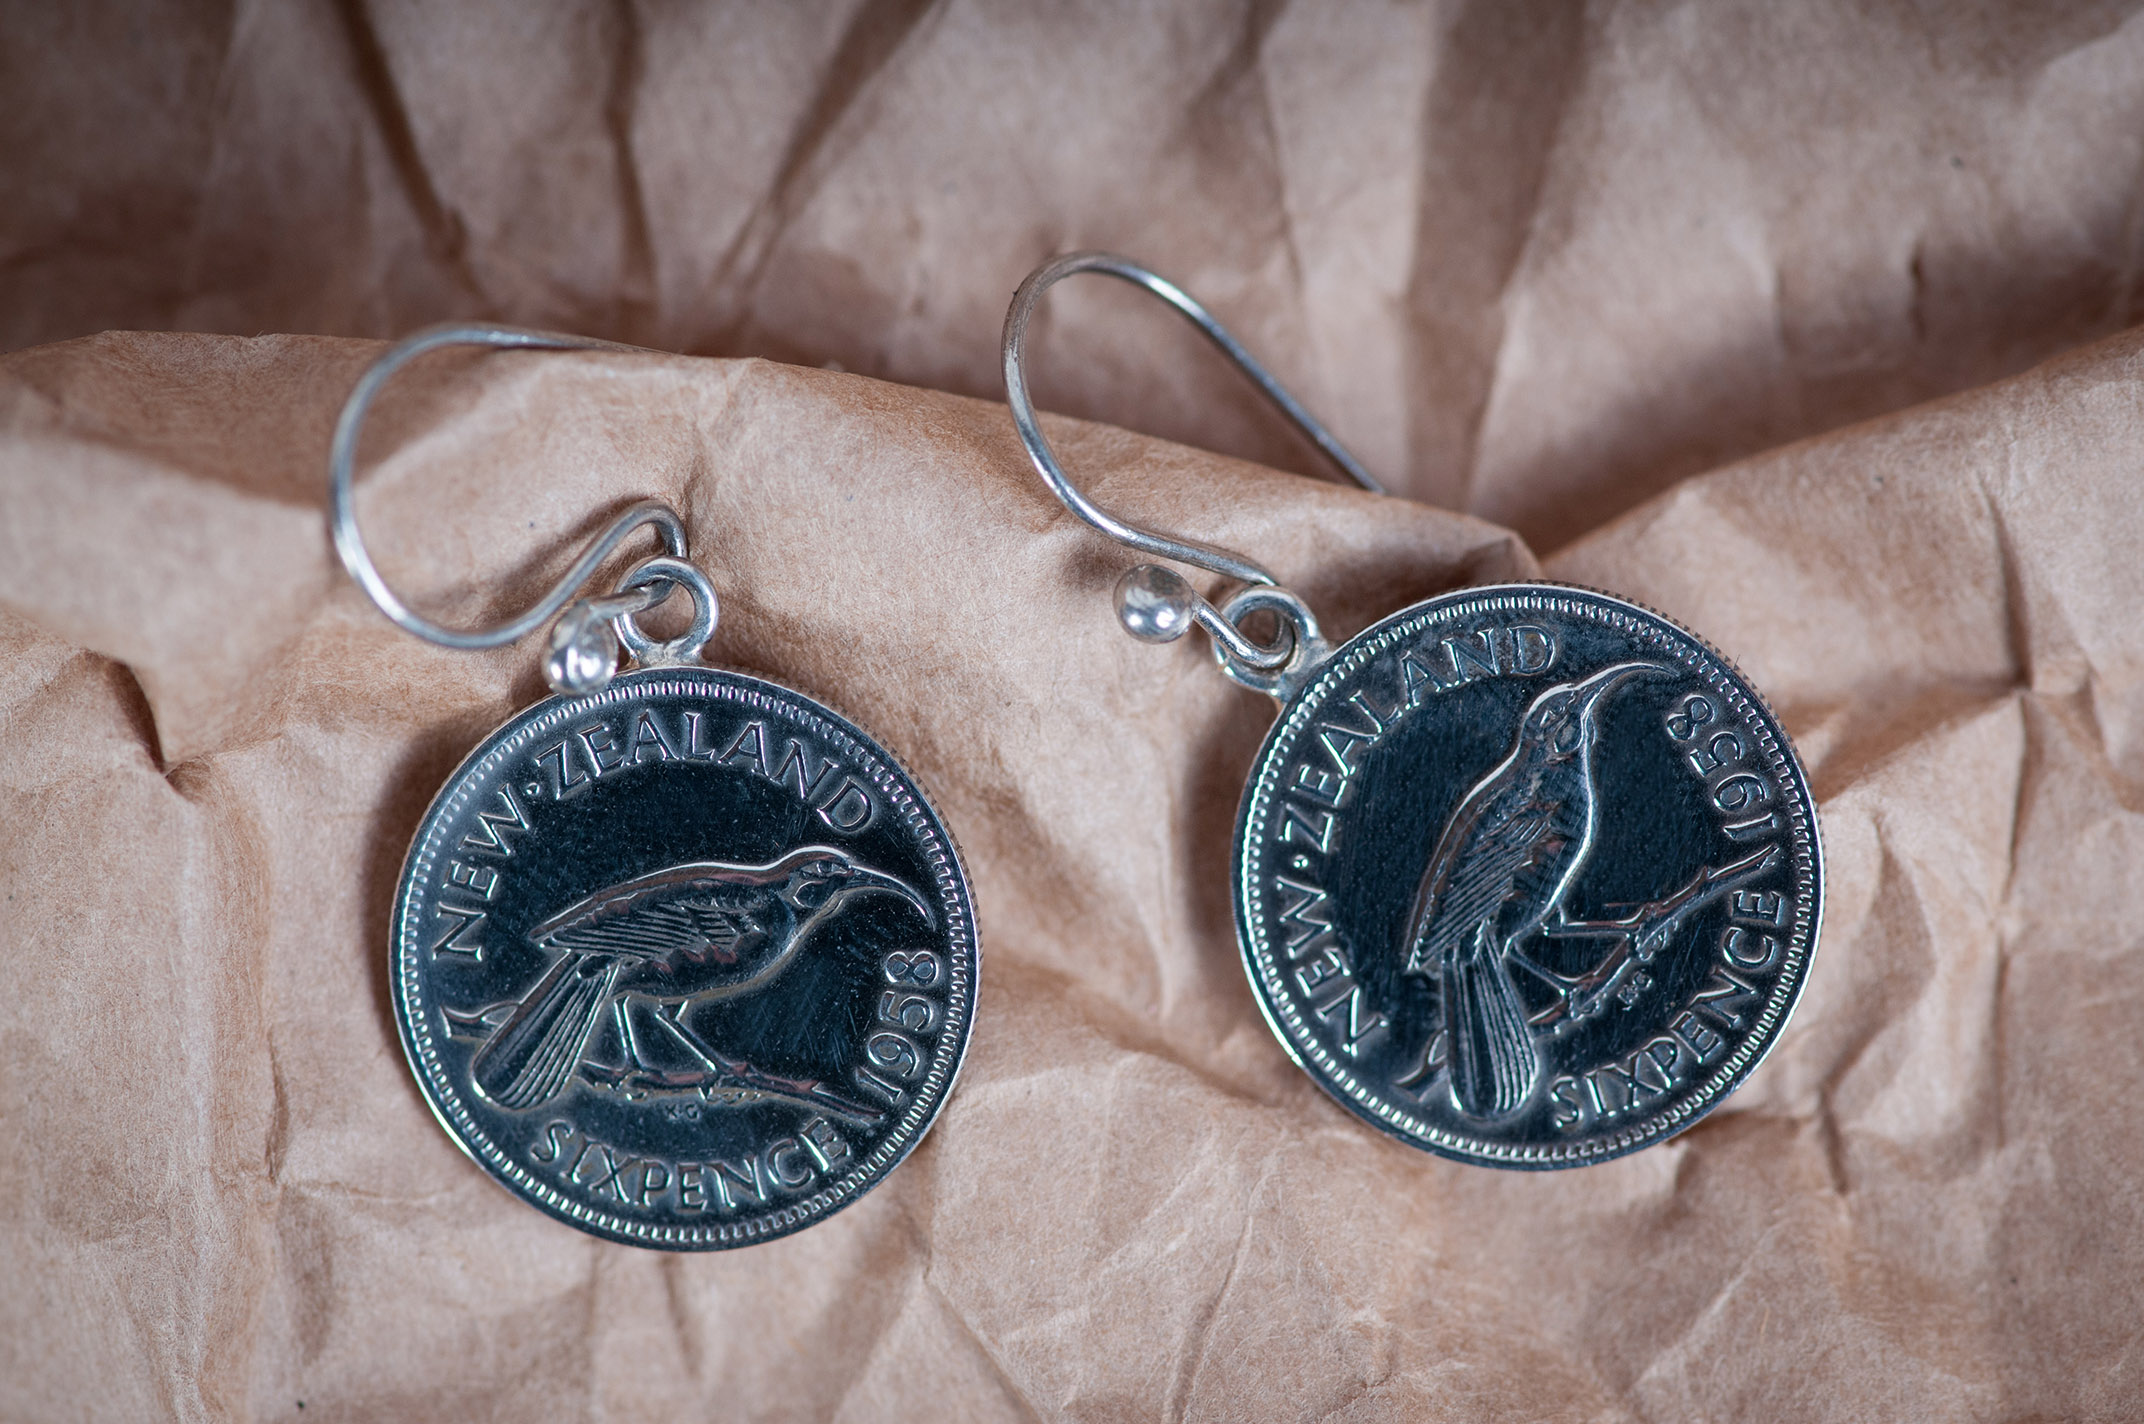 NZ Sixpence 1958 Earrings Product photography Anais Chaine professional Auckland photographer for Auckland museum www.anaischaine.com